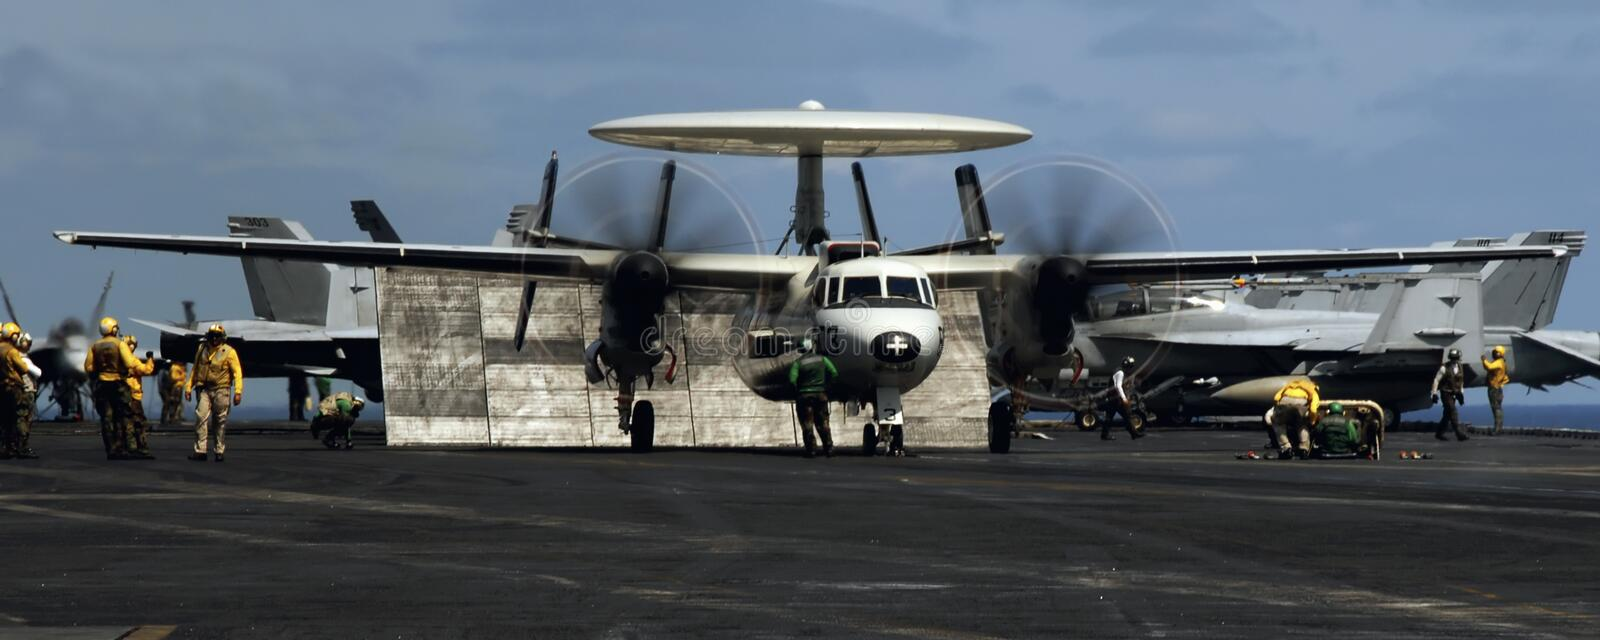 Hawkeye Run Up. An E-2C Hawkeye prepares to launch from a busy aircraft carrier deck royalty free stock photo